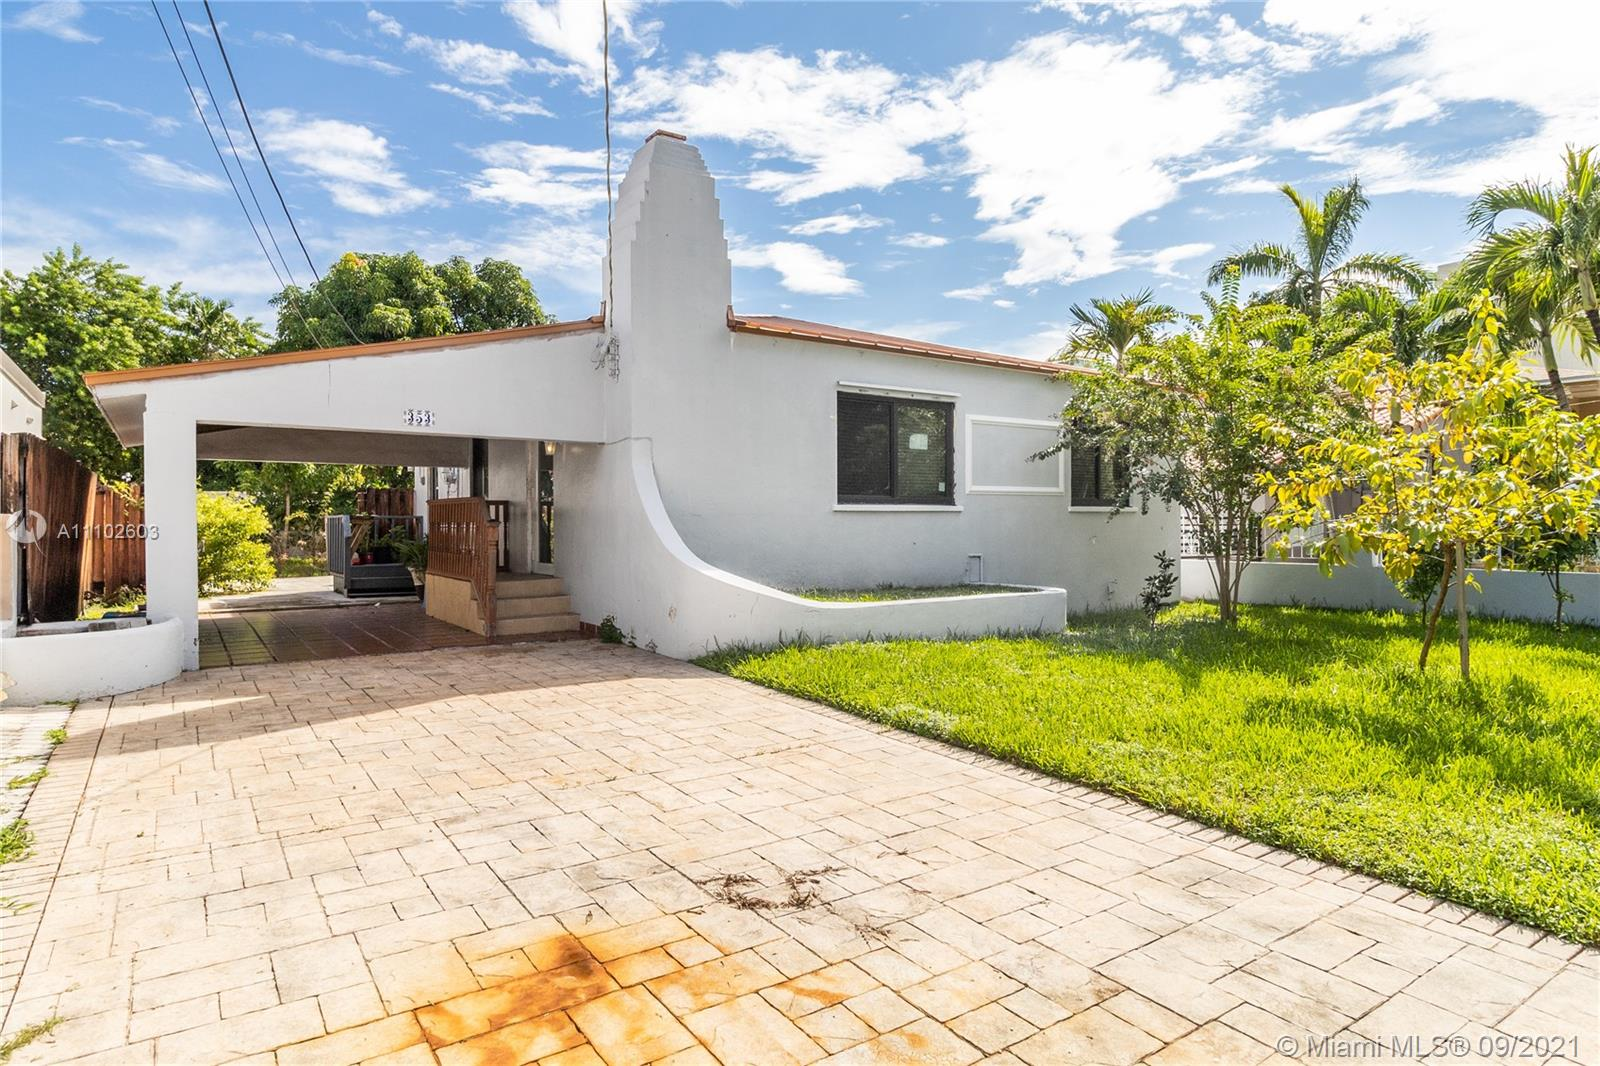 Single Family Home,For Sale,353 SW 23rd Rd, Miami, Florida 33129,Brickell,realty,broker,condos near me